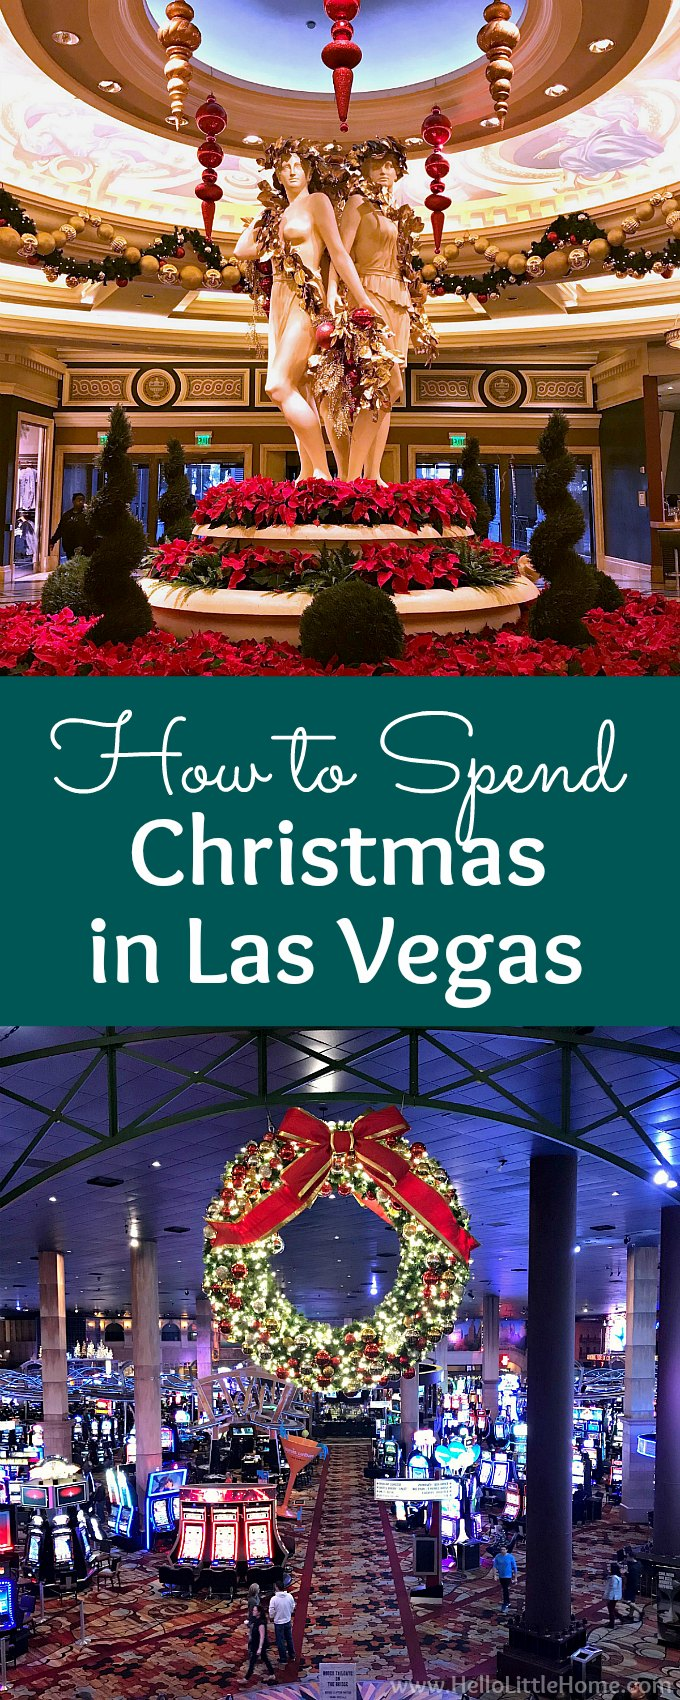 How to Spend Christmas in Las Vegas! Will you be traveling to Las Vegas for the holidays, and you're wondering what to do? These are the best things to do in Las Vegas at Christmas time and in November or December. Read on to enjoy lots of pictures of Las Vegas Christmas decorations from trees to lights at the different casinos on the Las Vegas Strip, plus get plenty of Las Vegas tips: how to see it all, where to eat, where to shop, where to stay, and more! | Hello Little Home